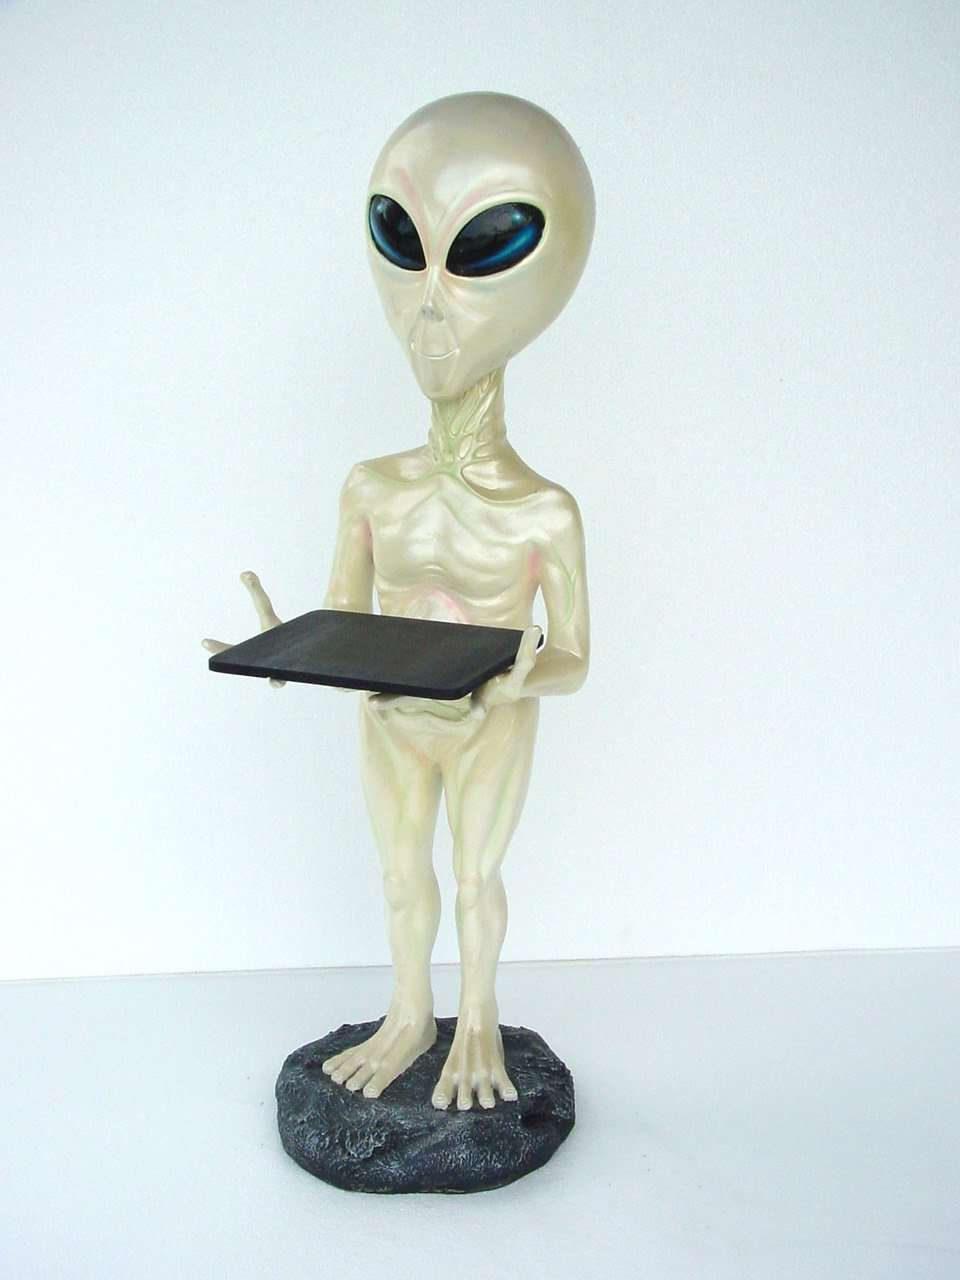 Alien Butler Standing Space Statue Prop Decor Life Size Resin - LM Treasures